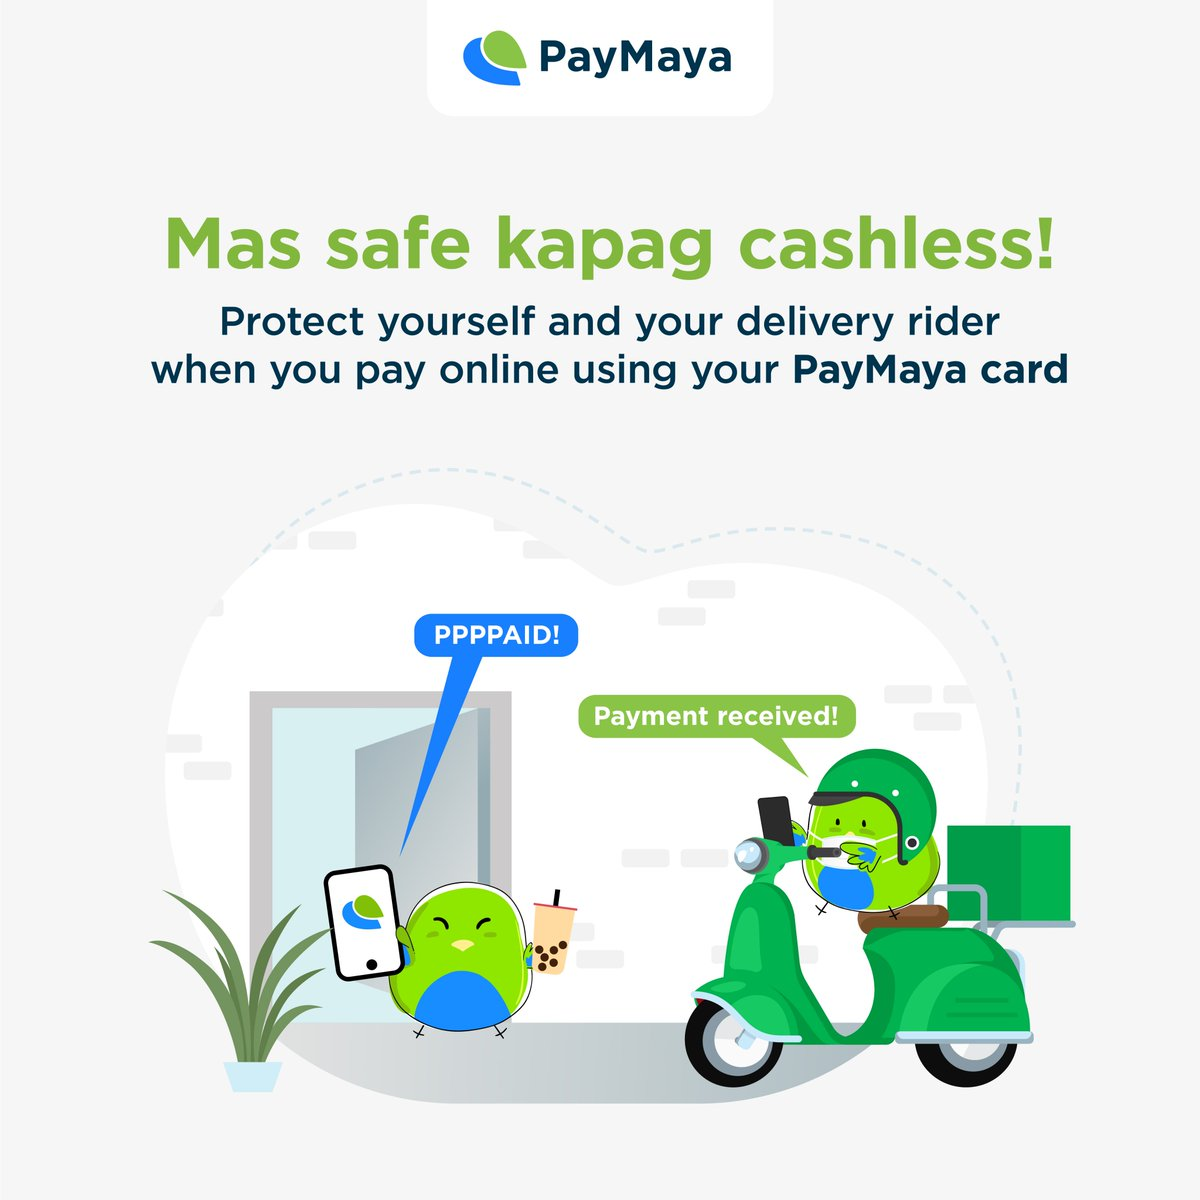 Let's all do our part in keeping the people around us safe and healthy! ​🚲  When ordering food and essentials online, go for the safer, more convenient, and more sulit way to pay! #DontPayCashPayMaya https://t.co/aaUXCEdLhU